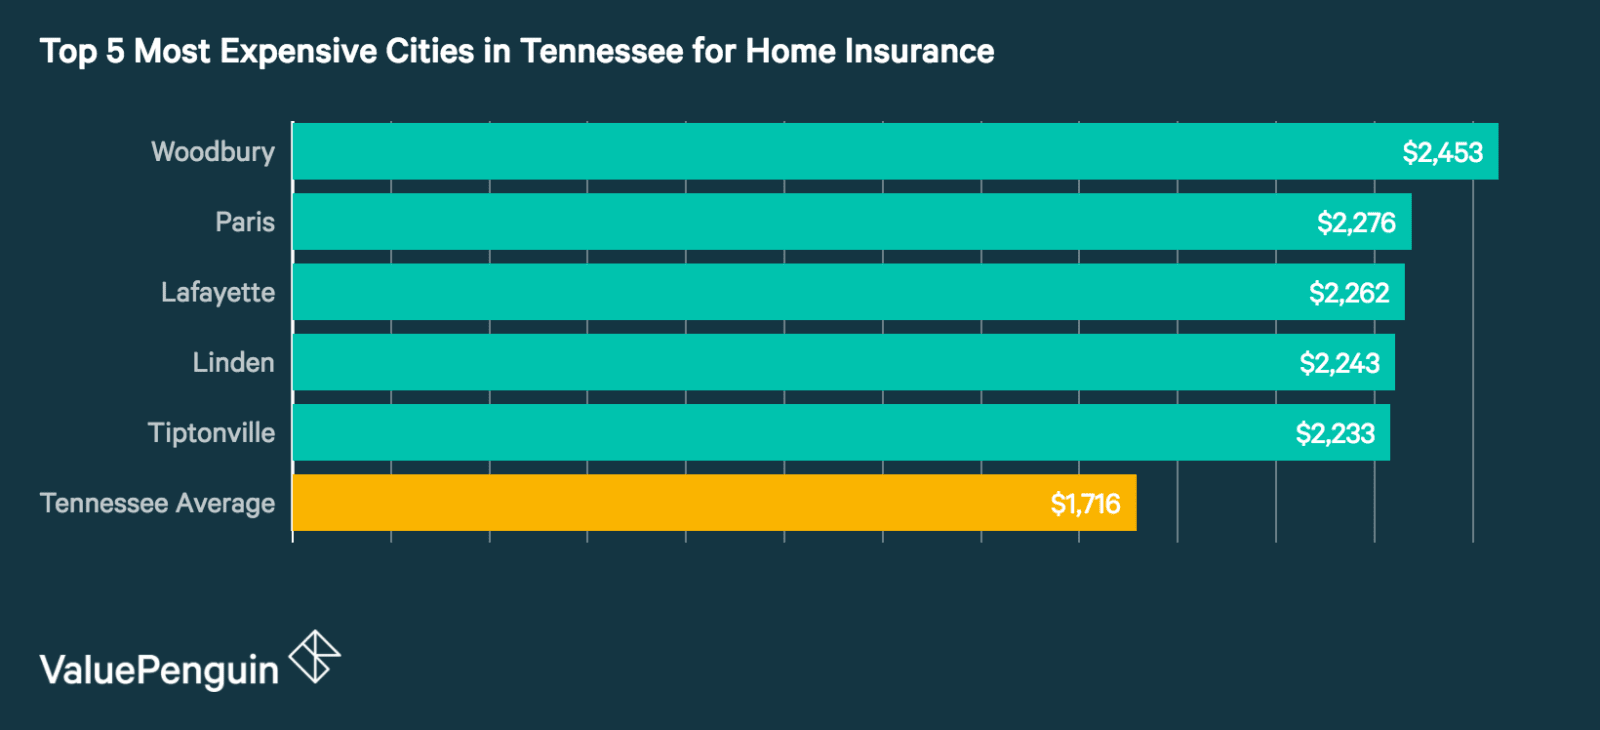 Top 5 Most Expensive Cities in Tennessee for Homeowners Insurance